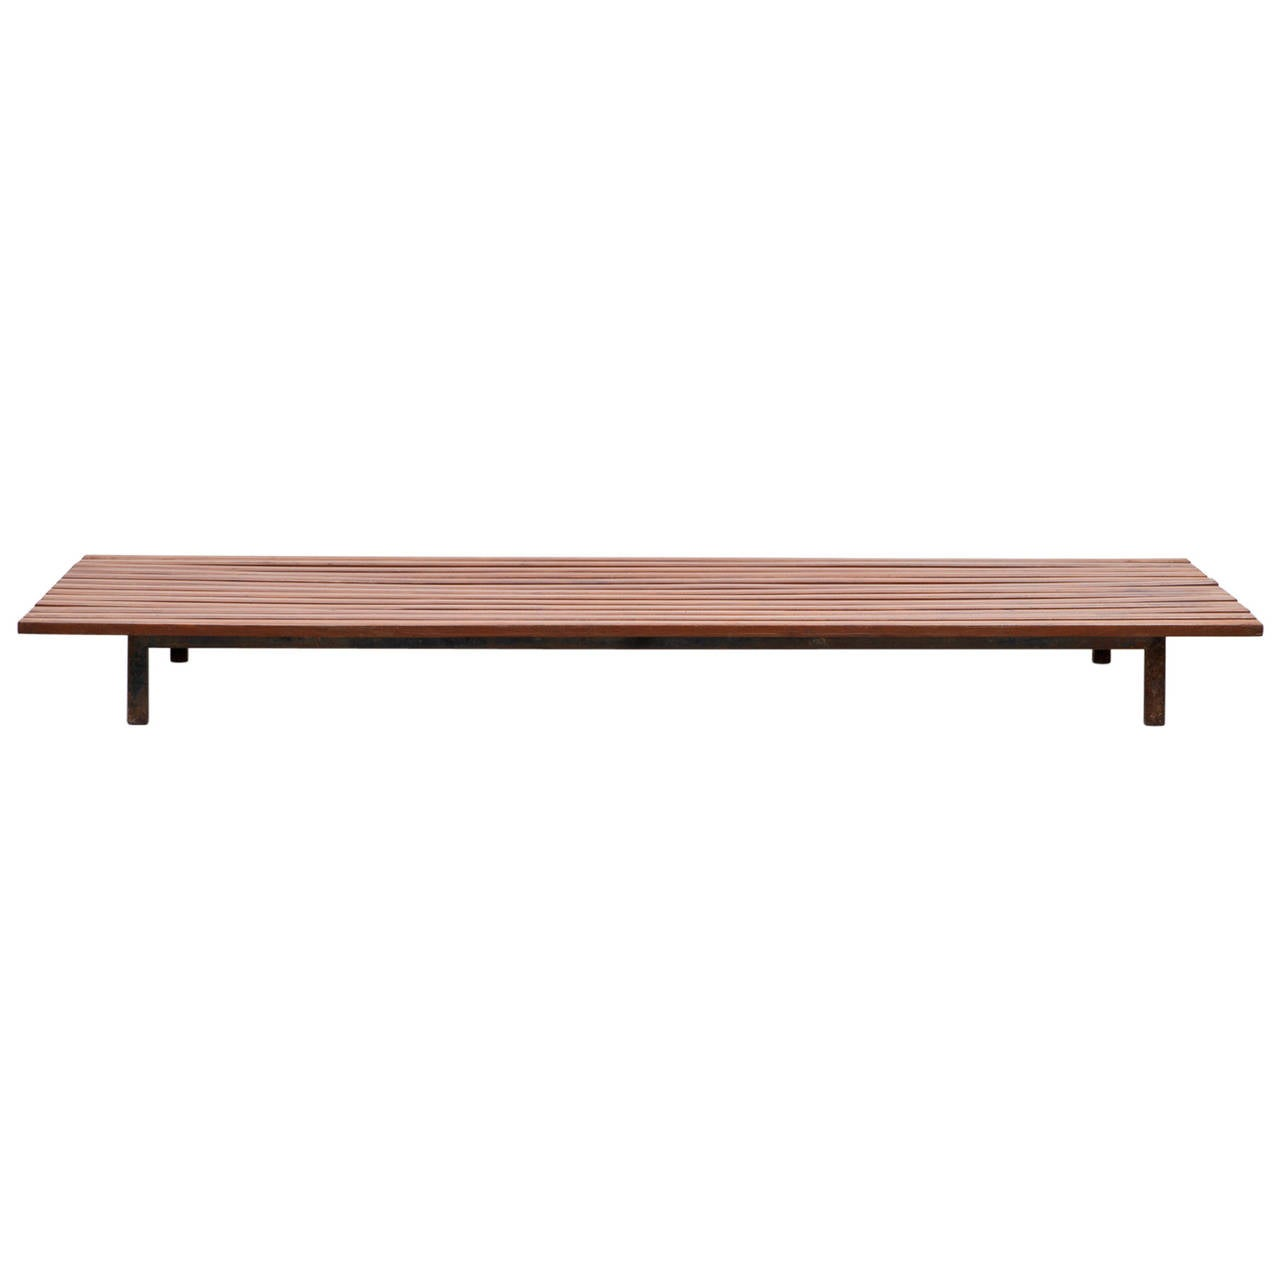 1950s Black Metal, Teak Bench by Charlotte Perriand